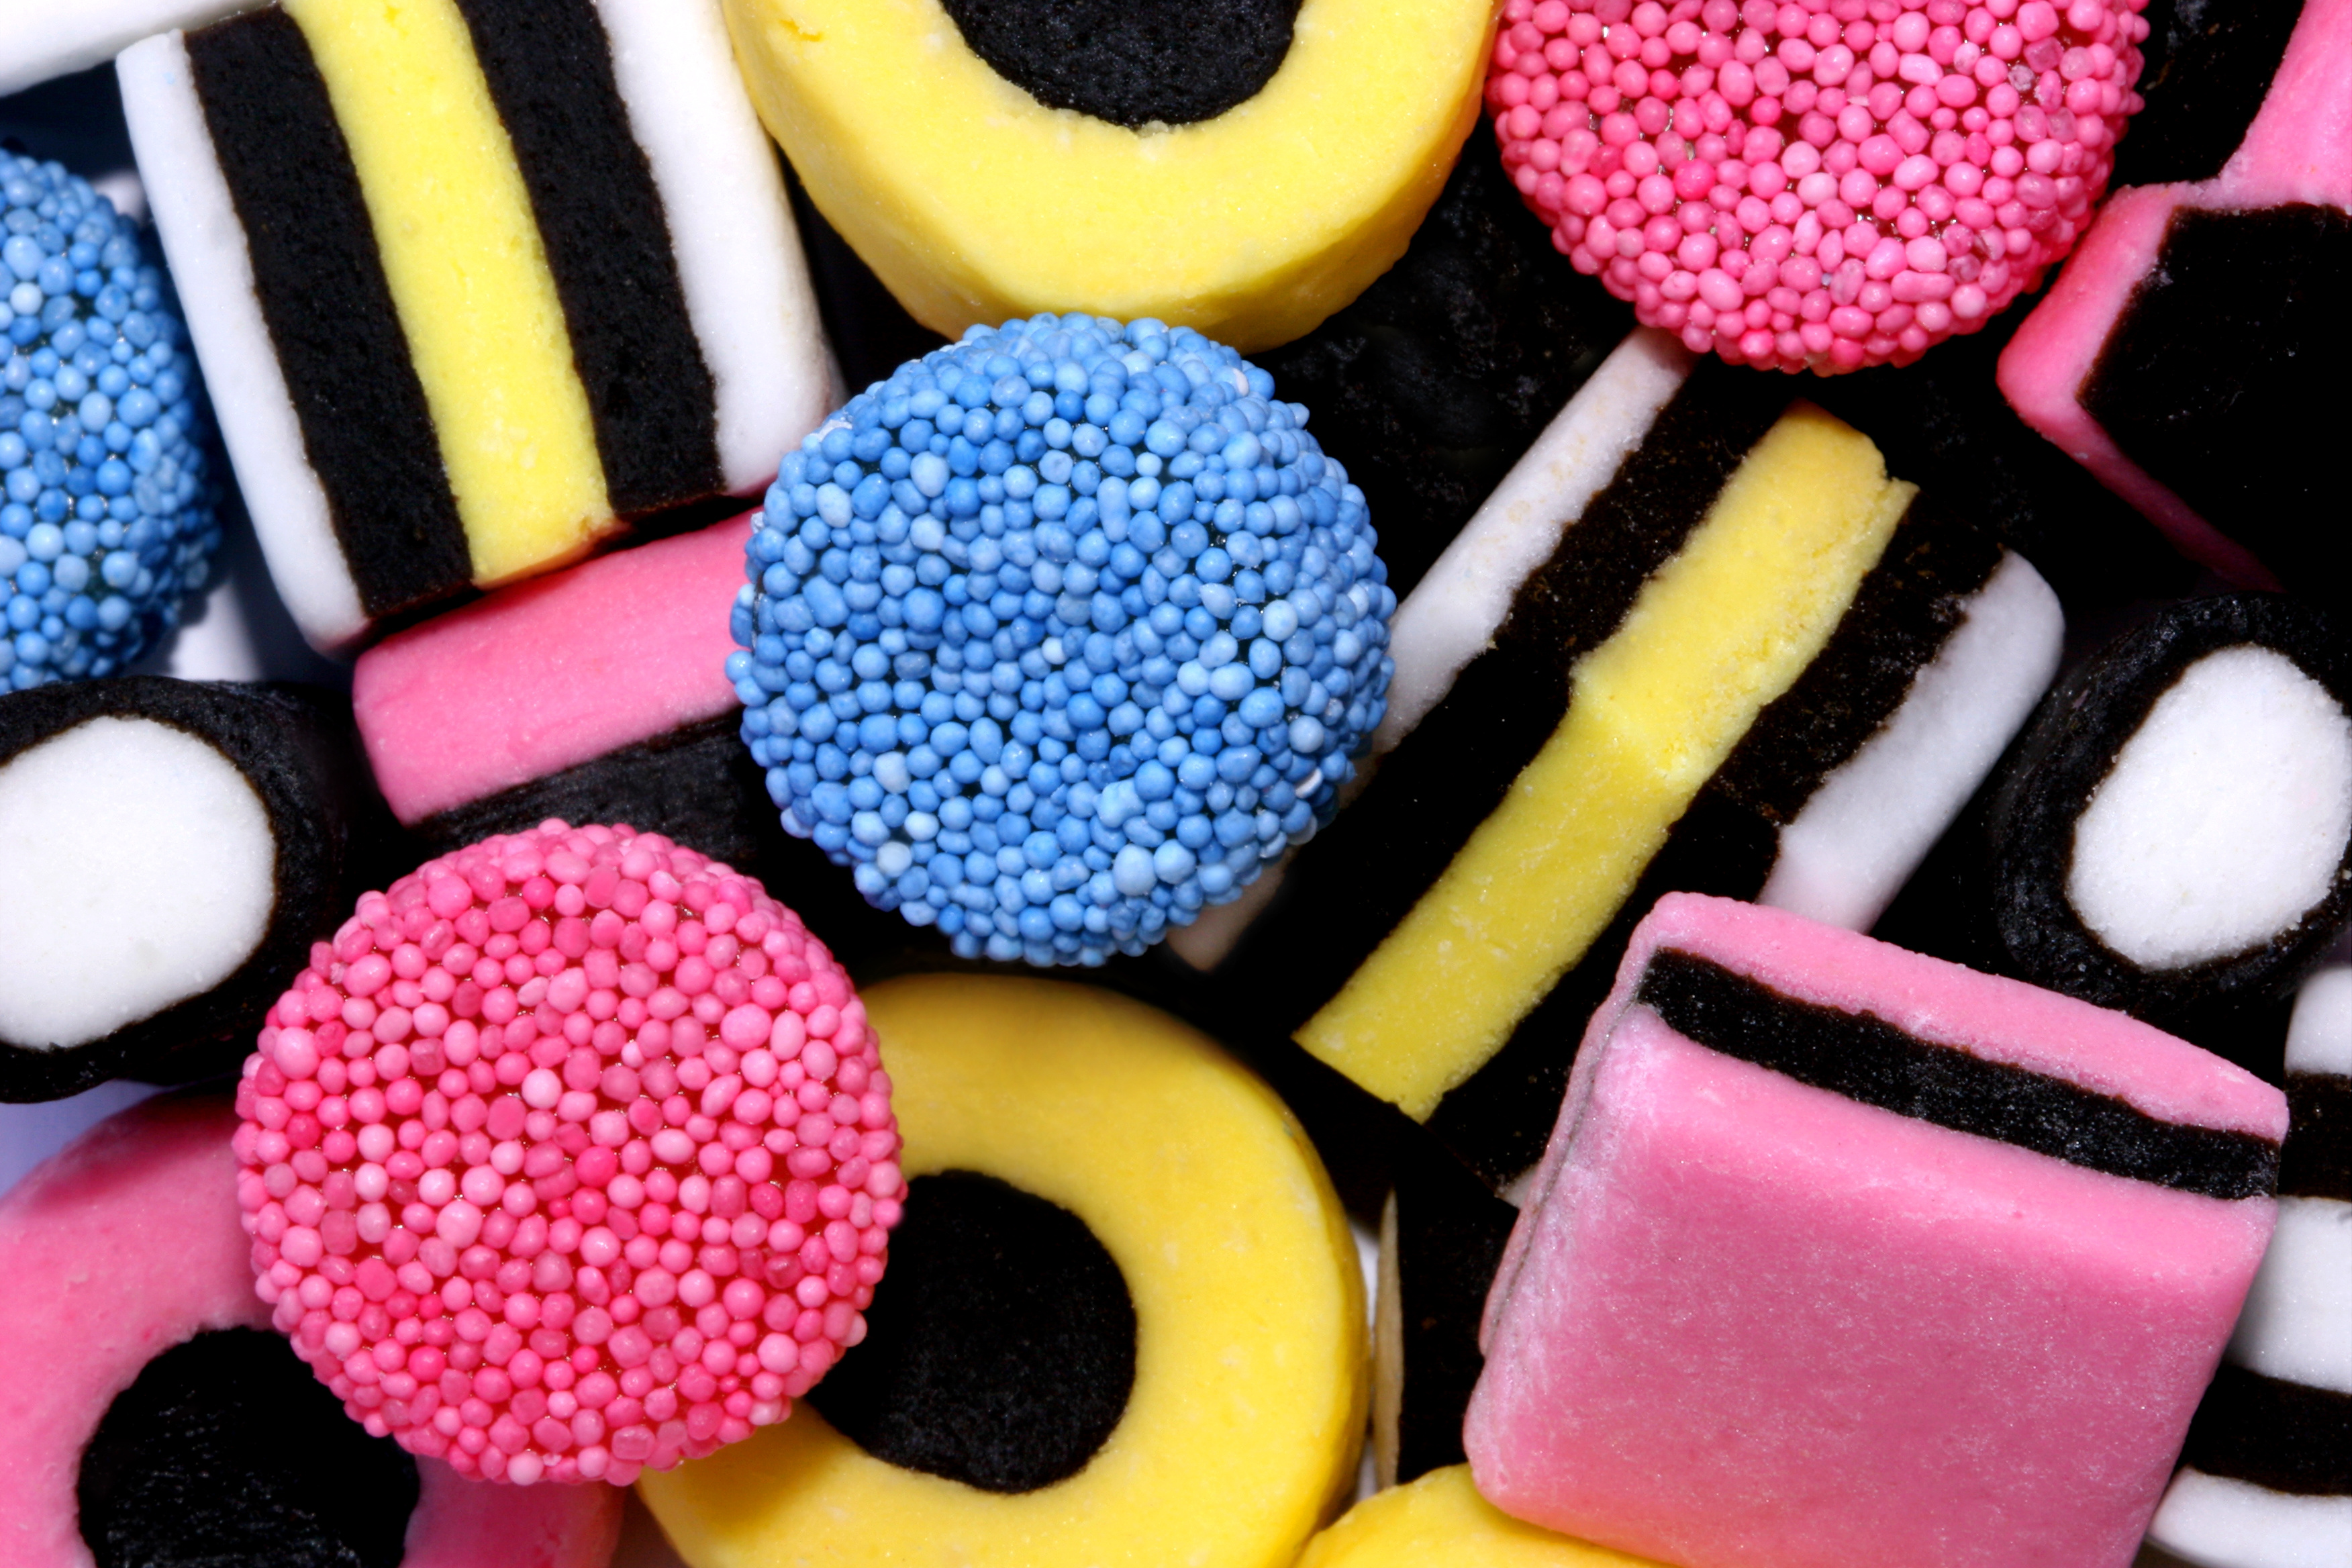 An assortment of liquorice allsorts sweets.